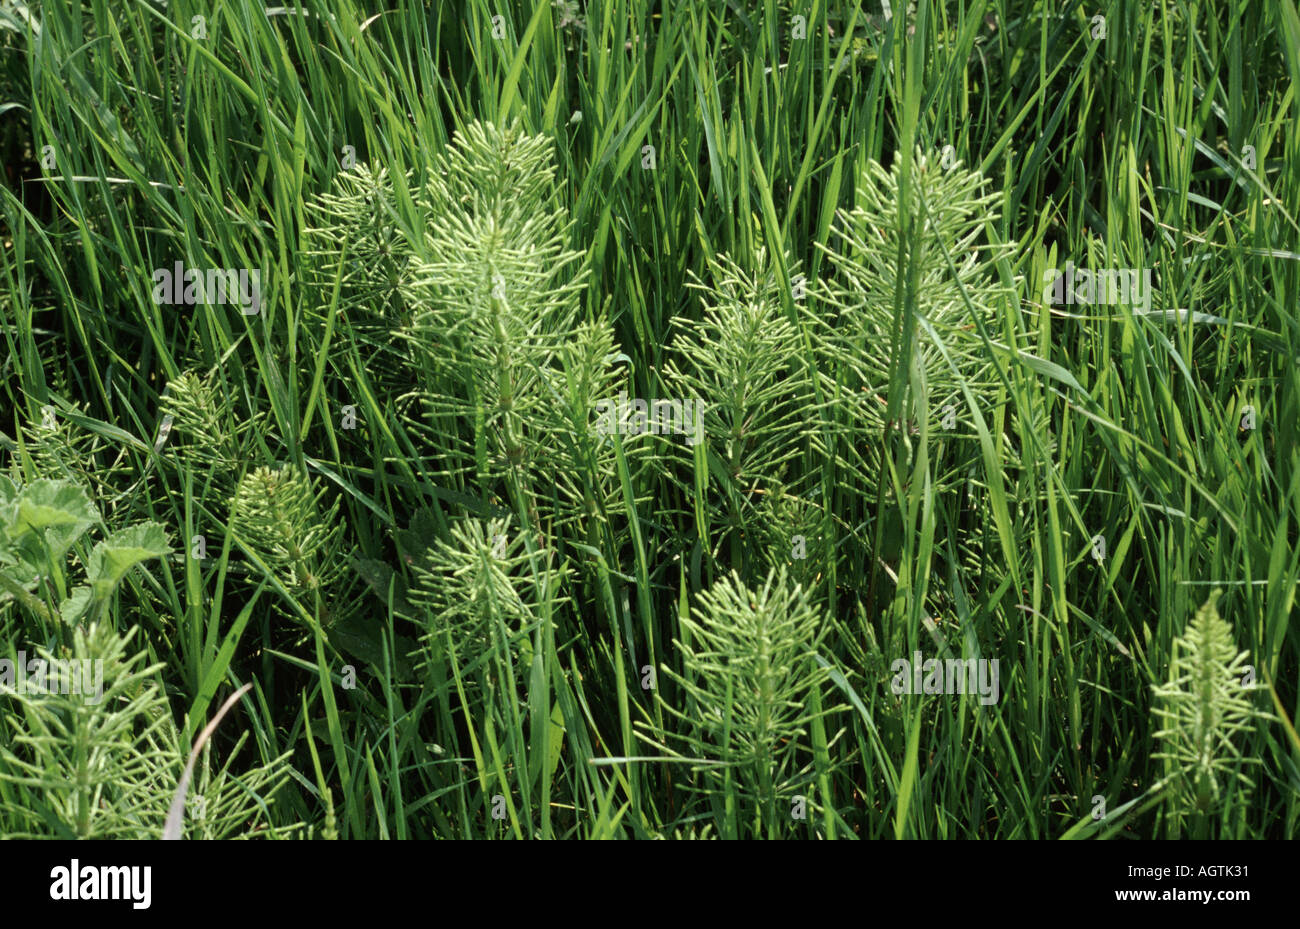 Common Horsetail Equisetum arvense in Ryegrass ley - Stock Image